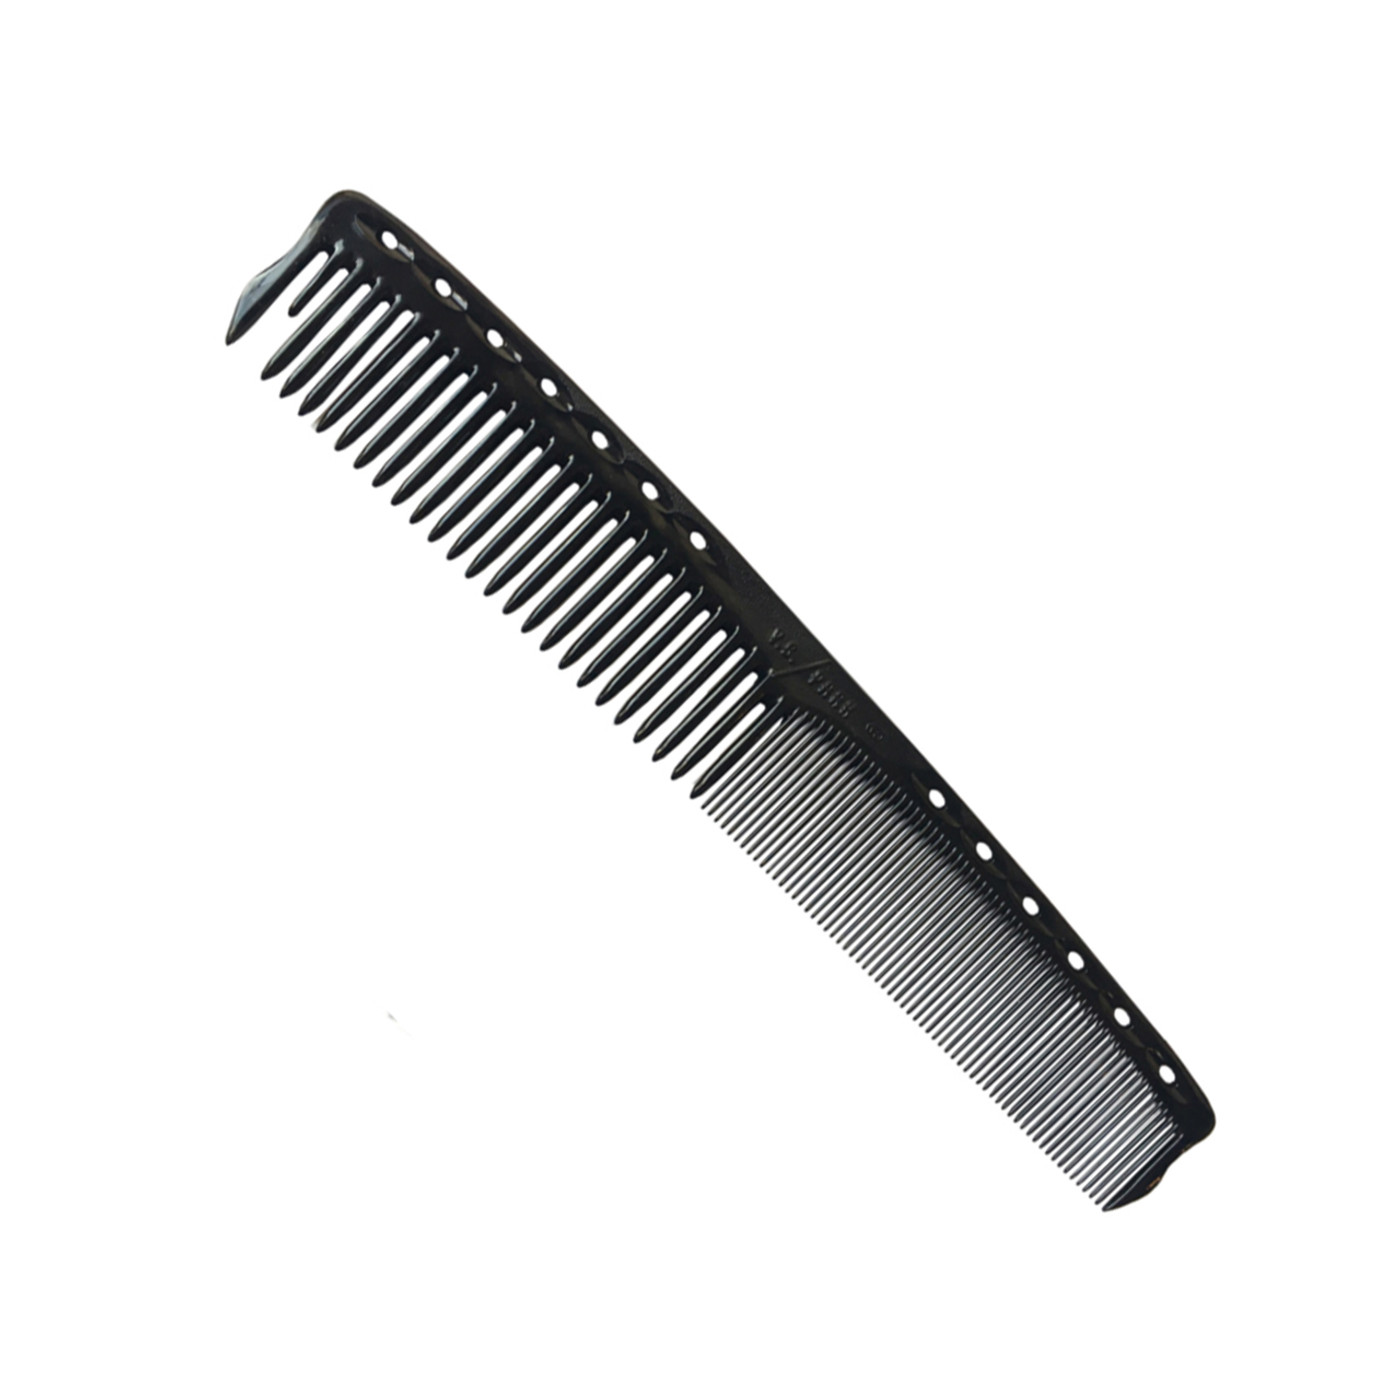 YS Park 365 French Cutting Comb - Carbon Black